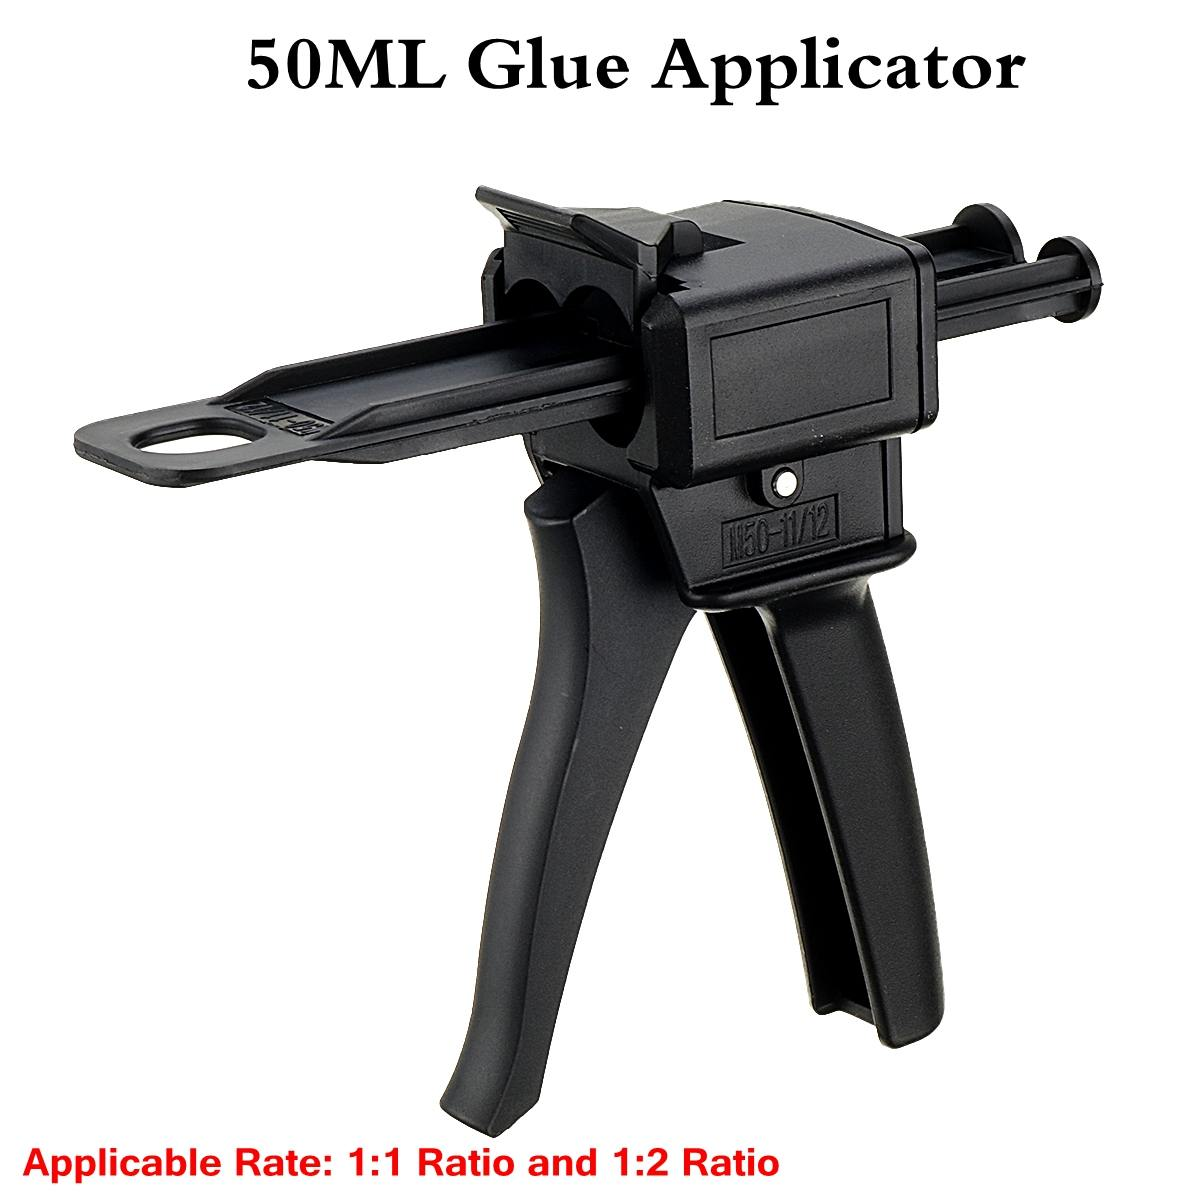 Glue G Un 50ml Two Component AB Epoxy Sealant Glue Applicator Glue Adhensive Squeeze Mixed 1:1/1:2 Manual Glue Applicator